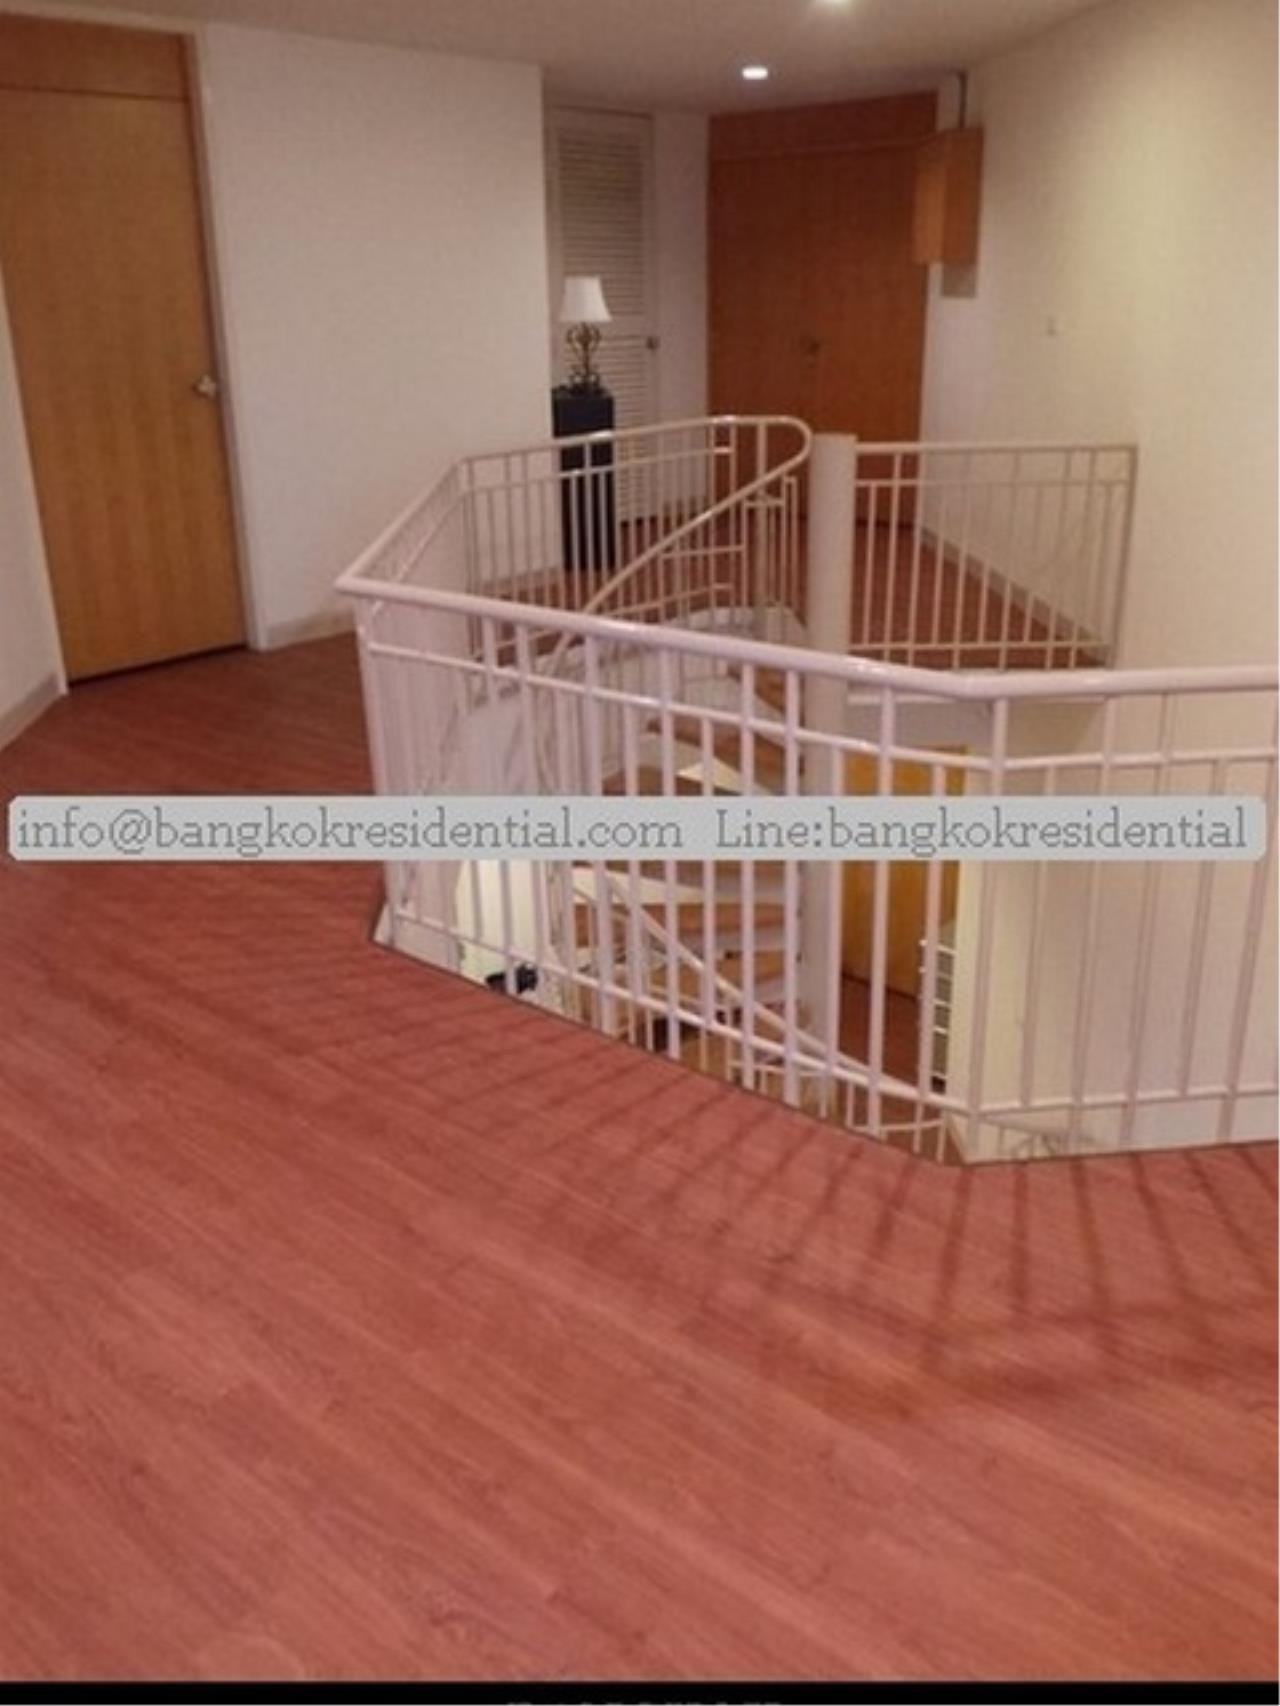 Bangkok Residential Agency's 3BR Tai Ping Tower For Rent (BR4448CD) 6